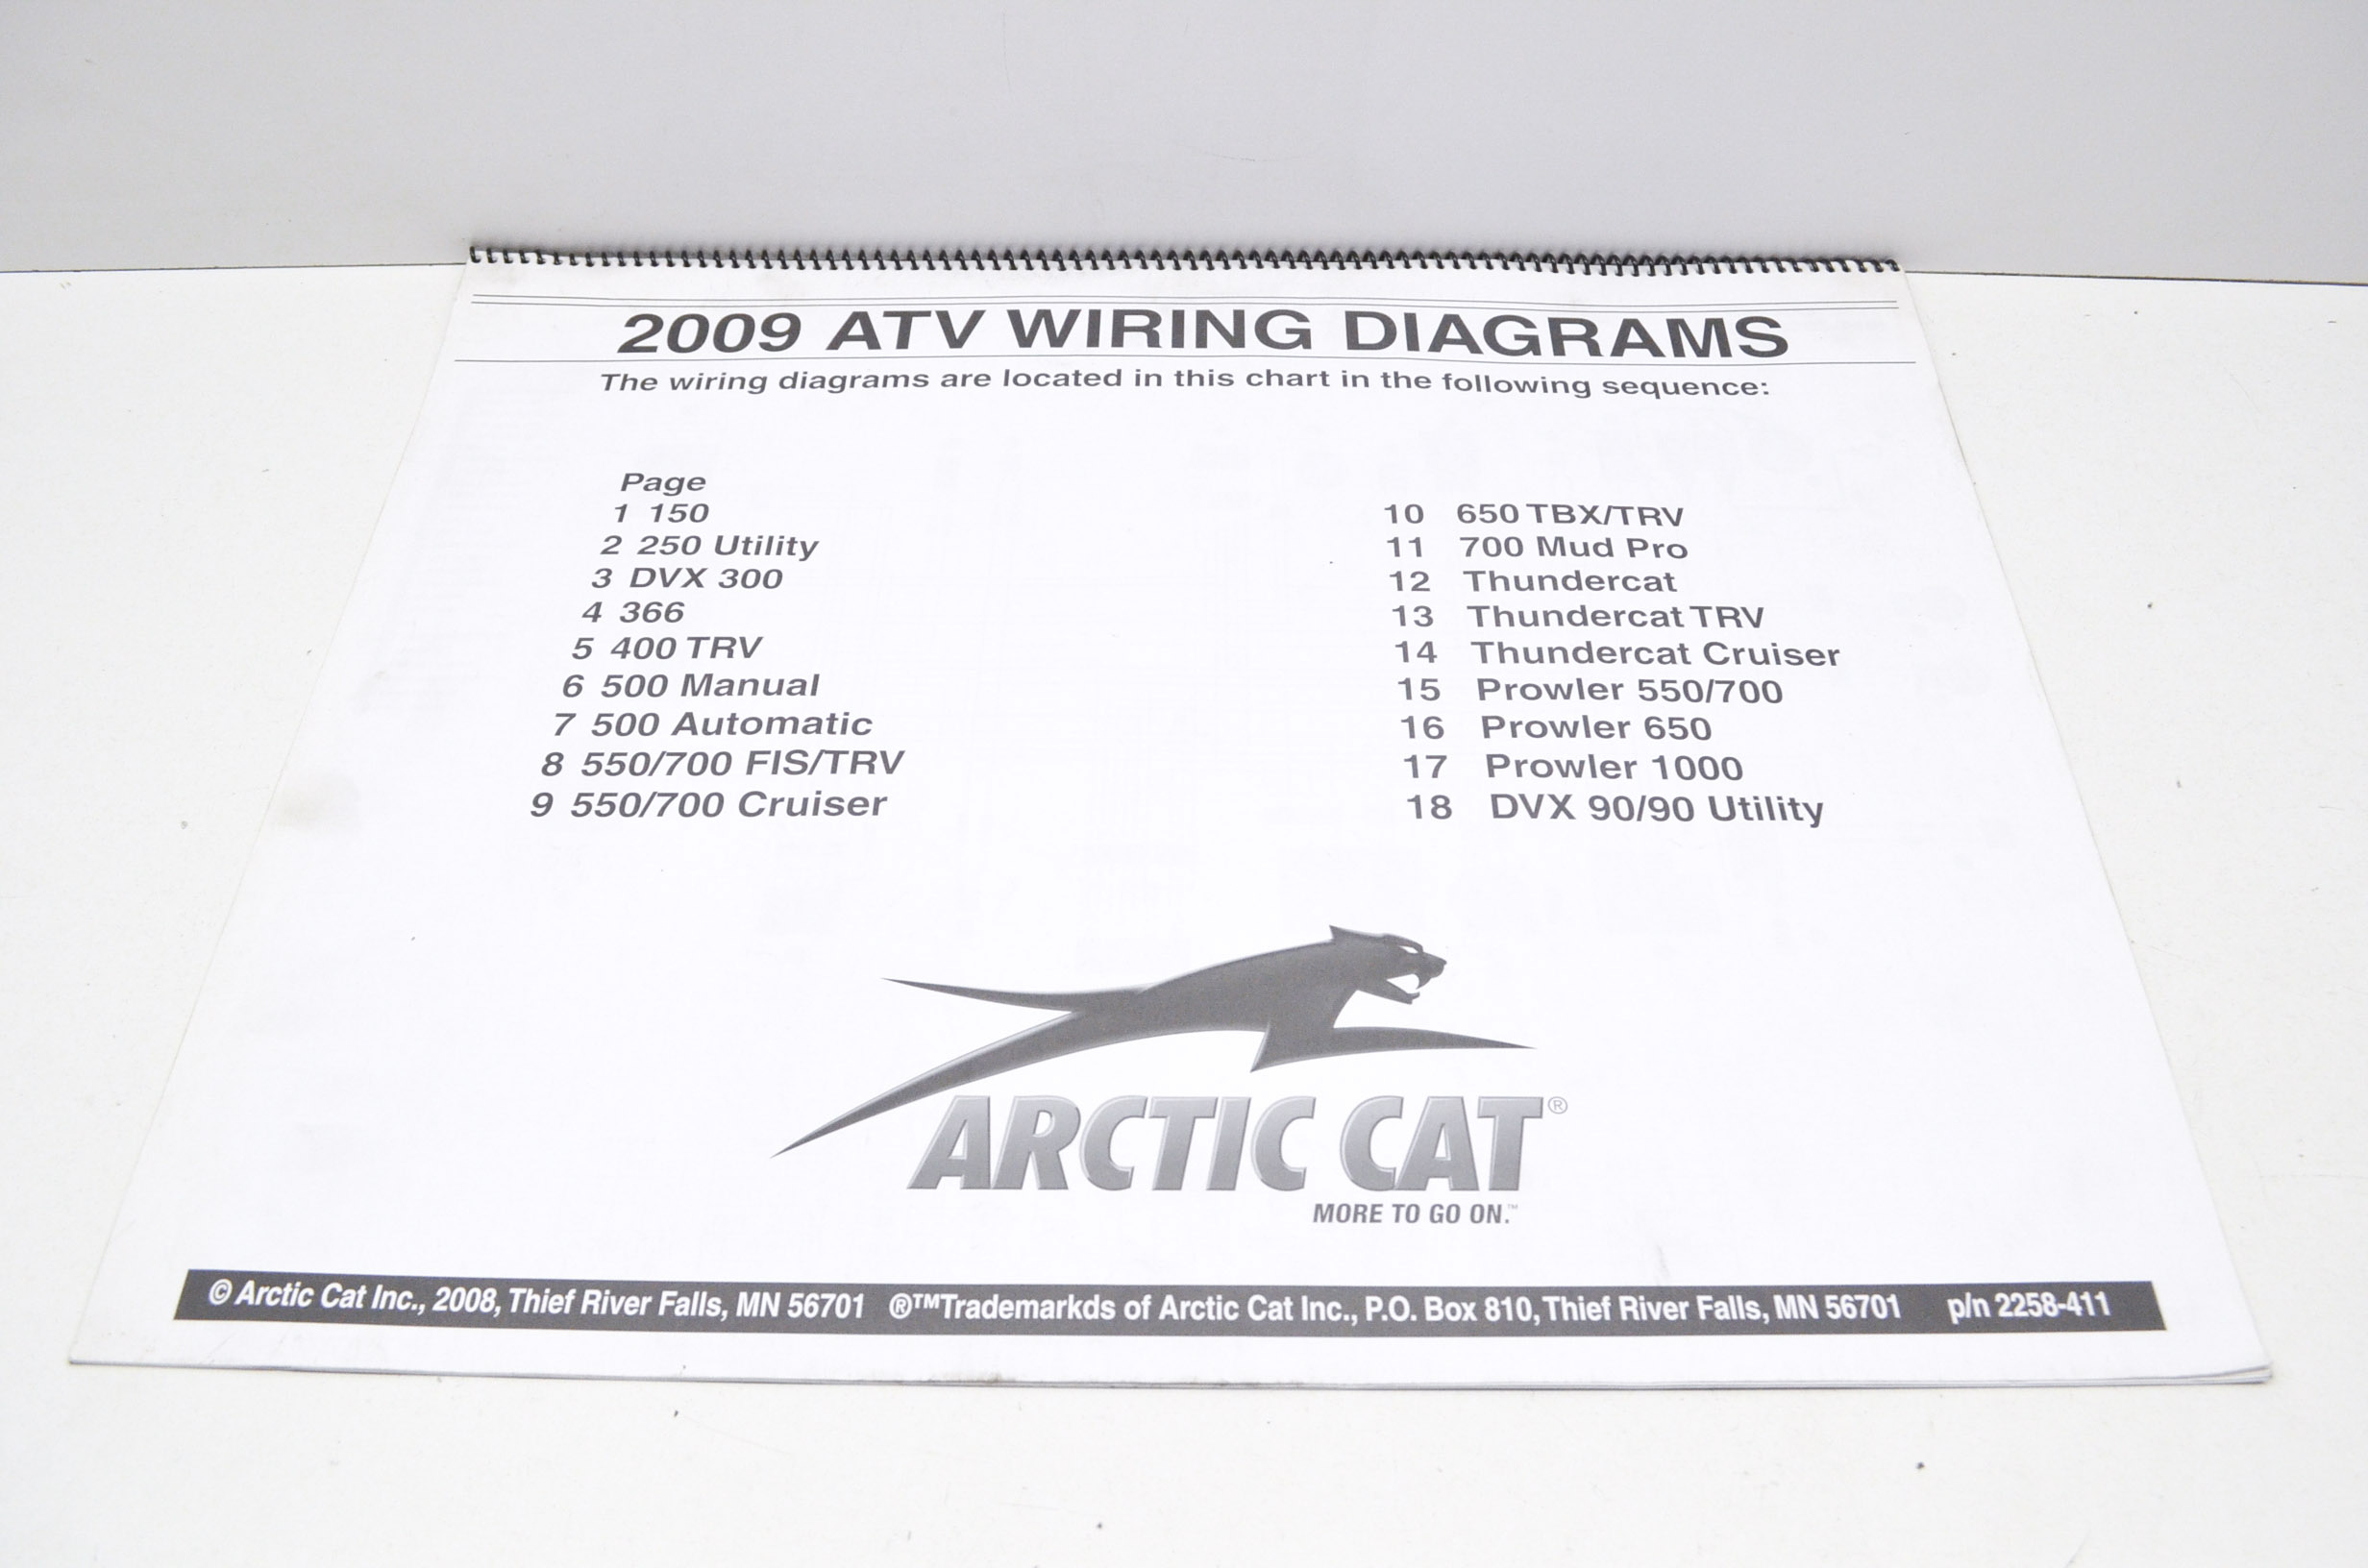 medium resolution of arctic cat 2258 411 2009 atv wiring diagrams qty 1 walmart com rh walmart com arctic cat wiring schematic arctic cat atv wiring schematics